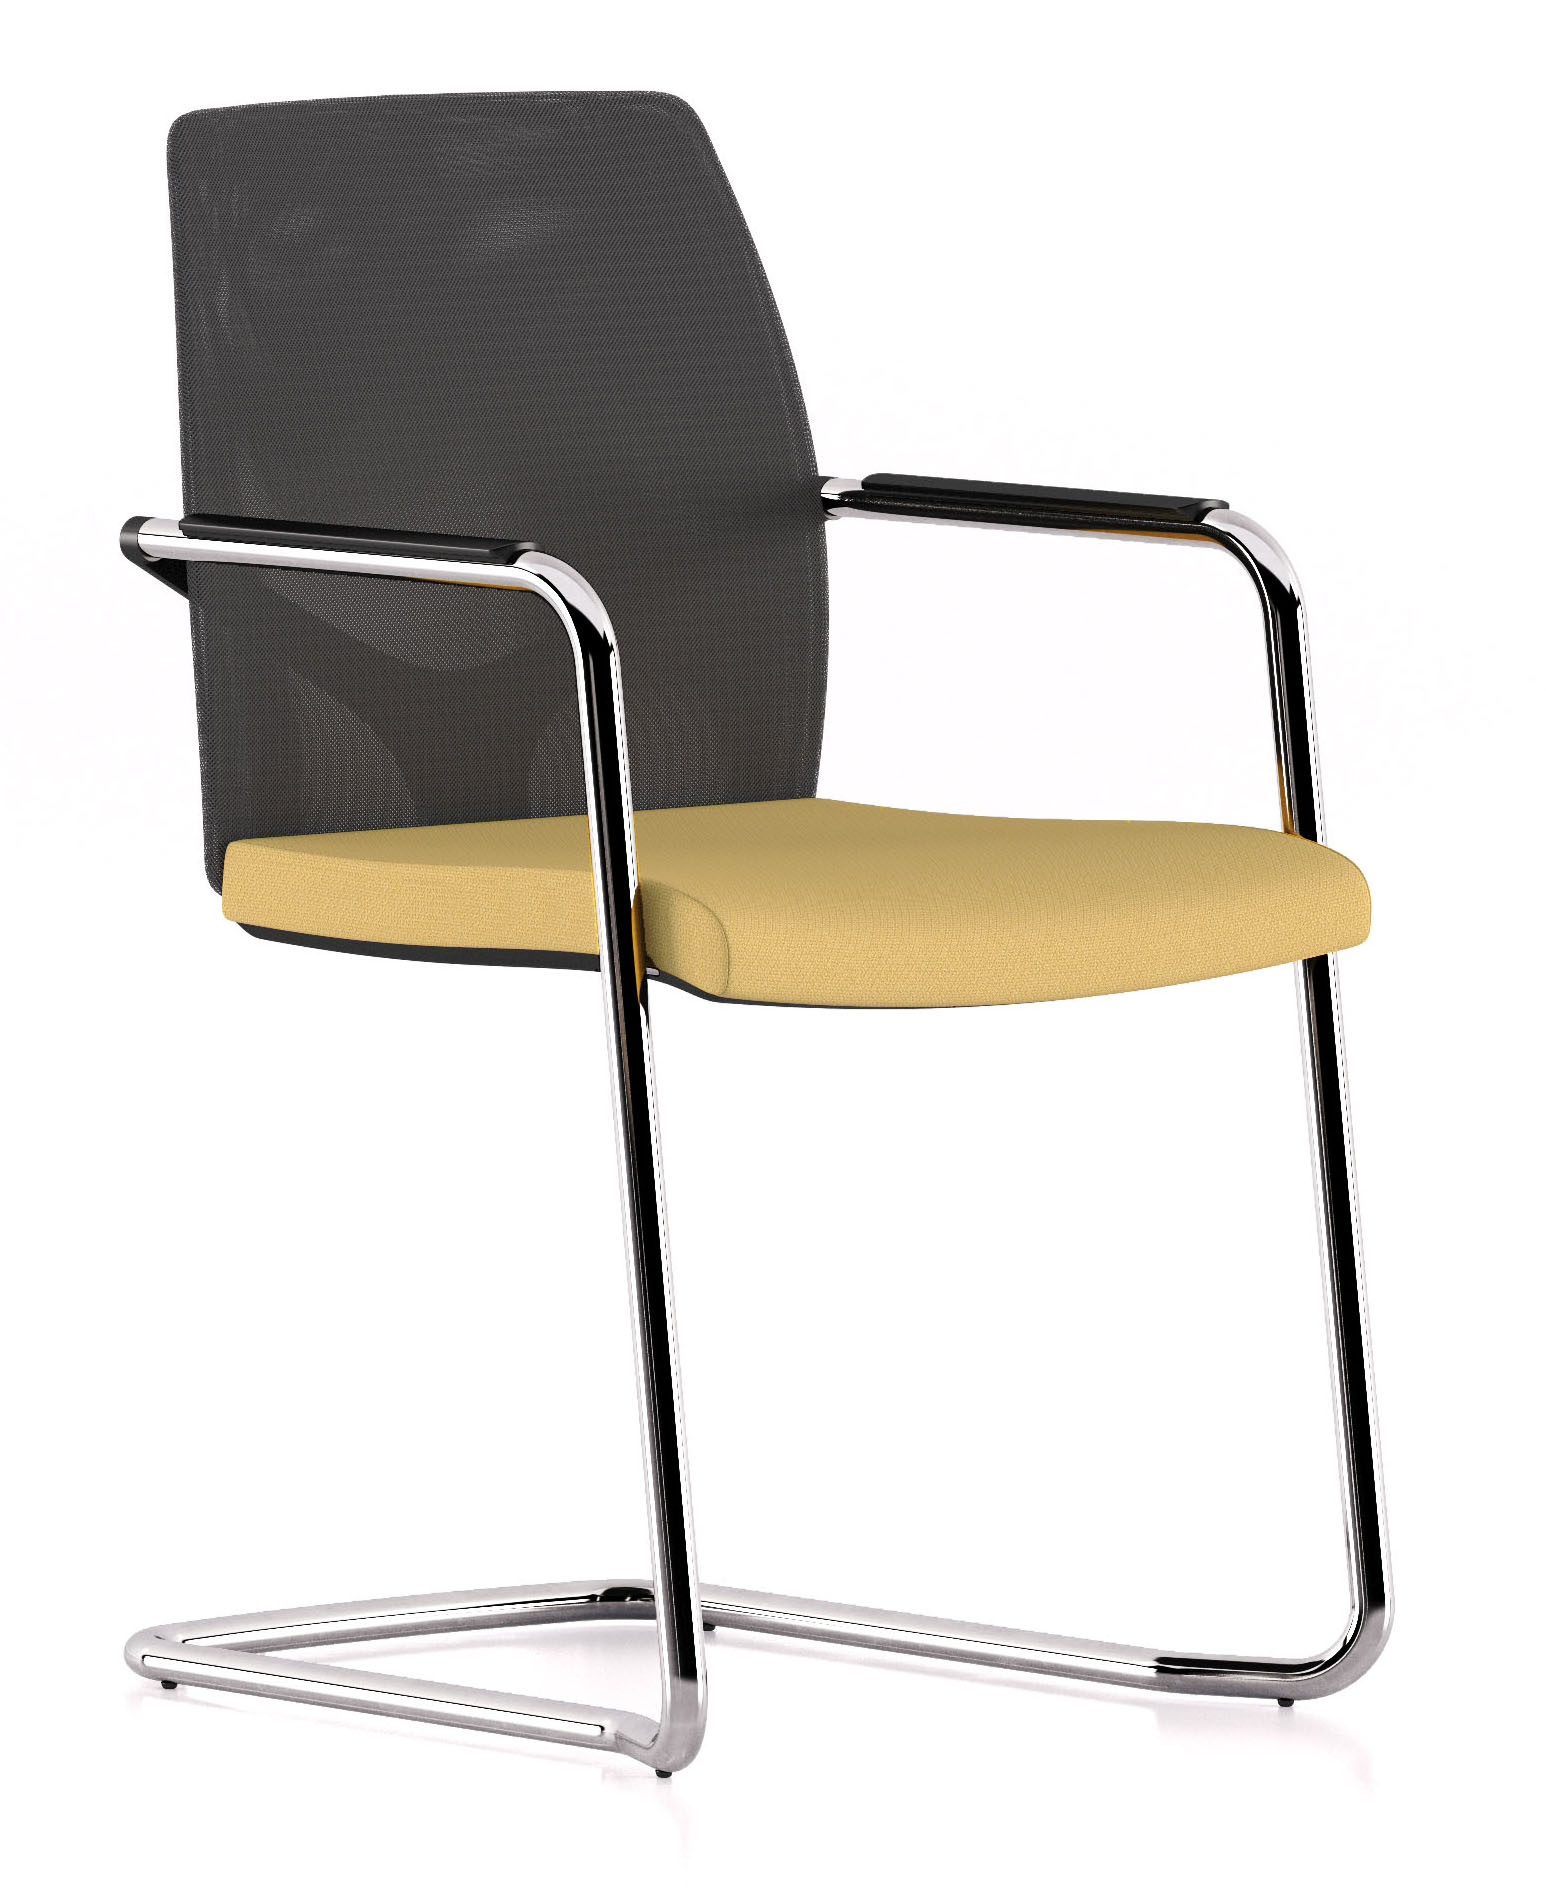 Easyback Cantilever Office Chair